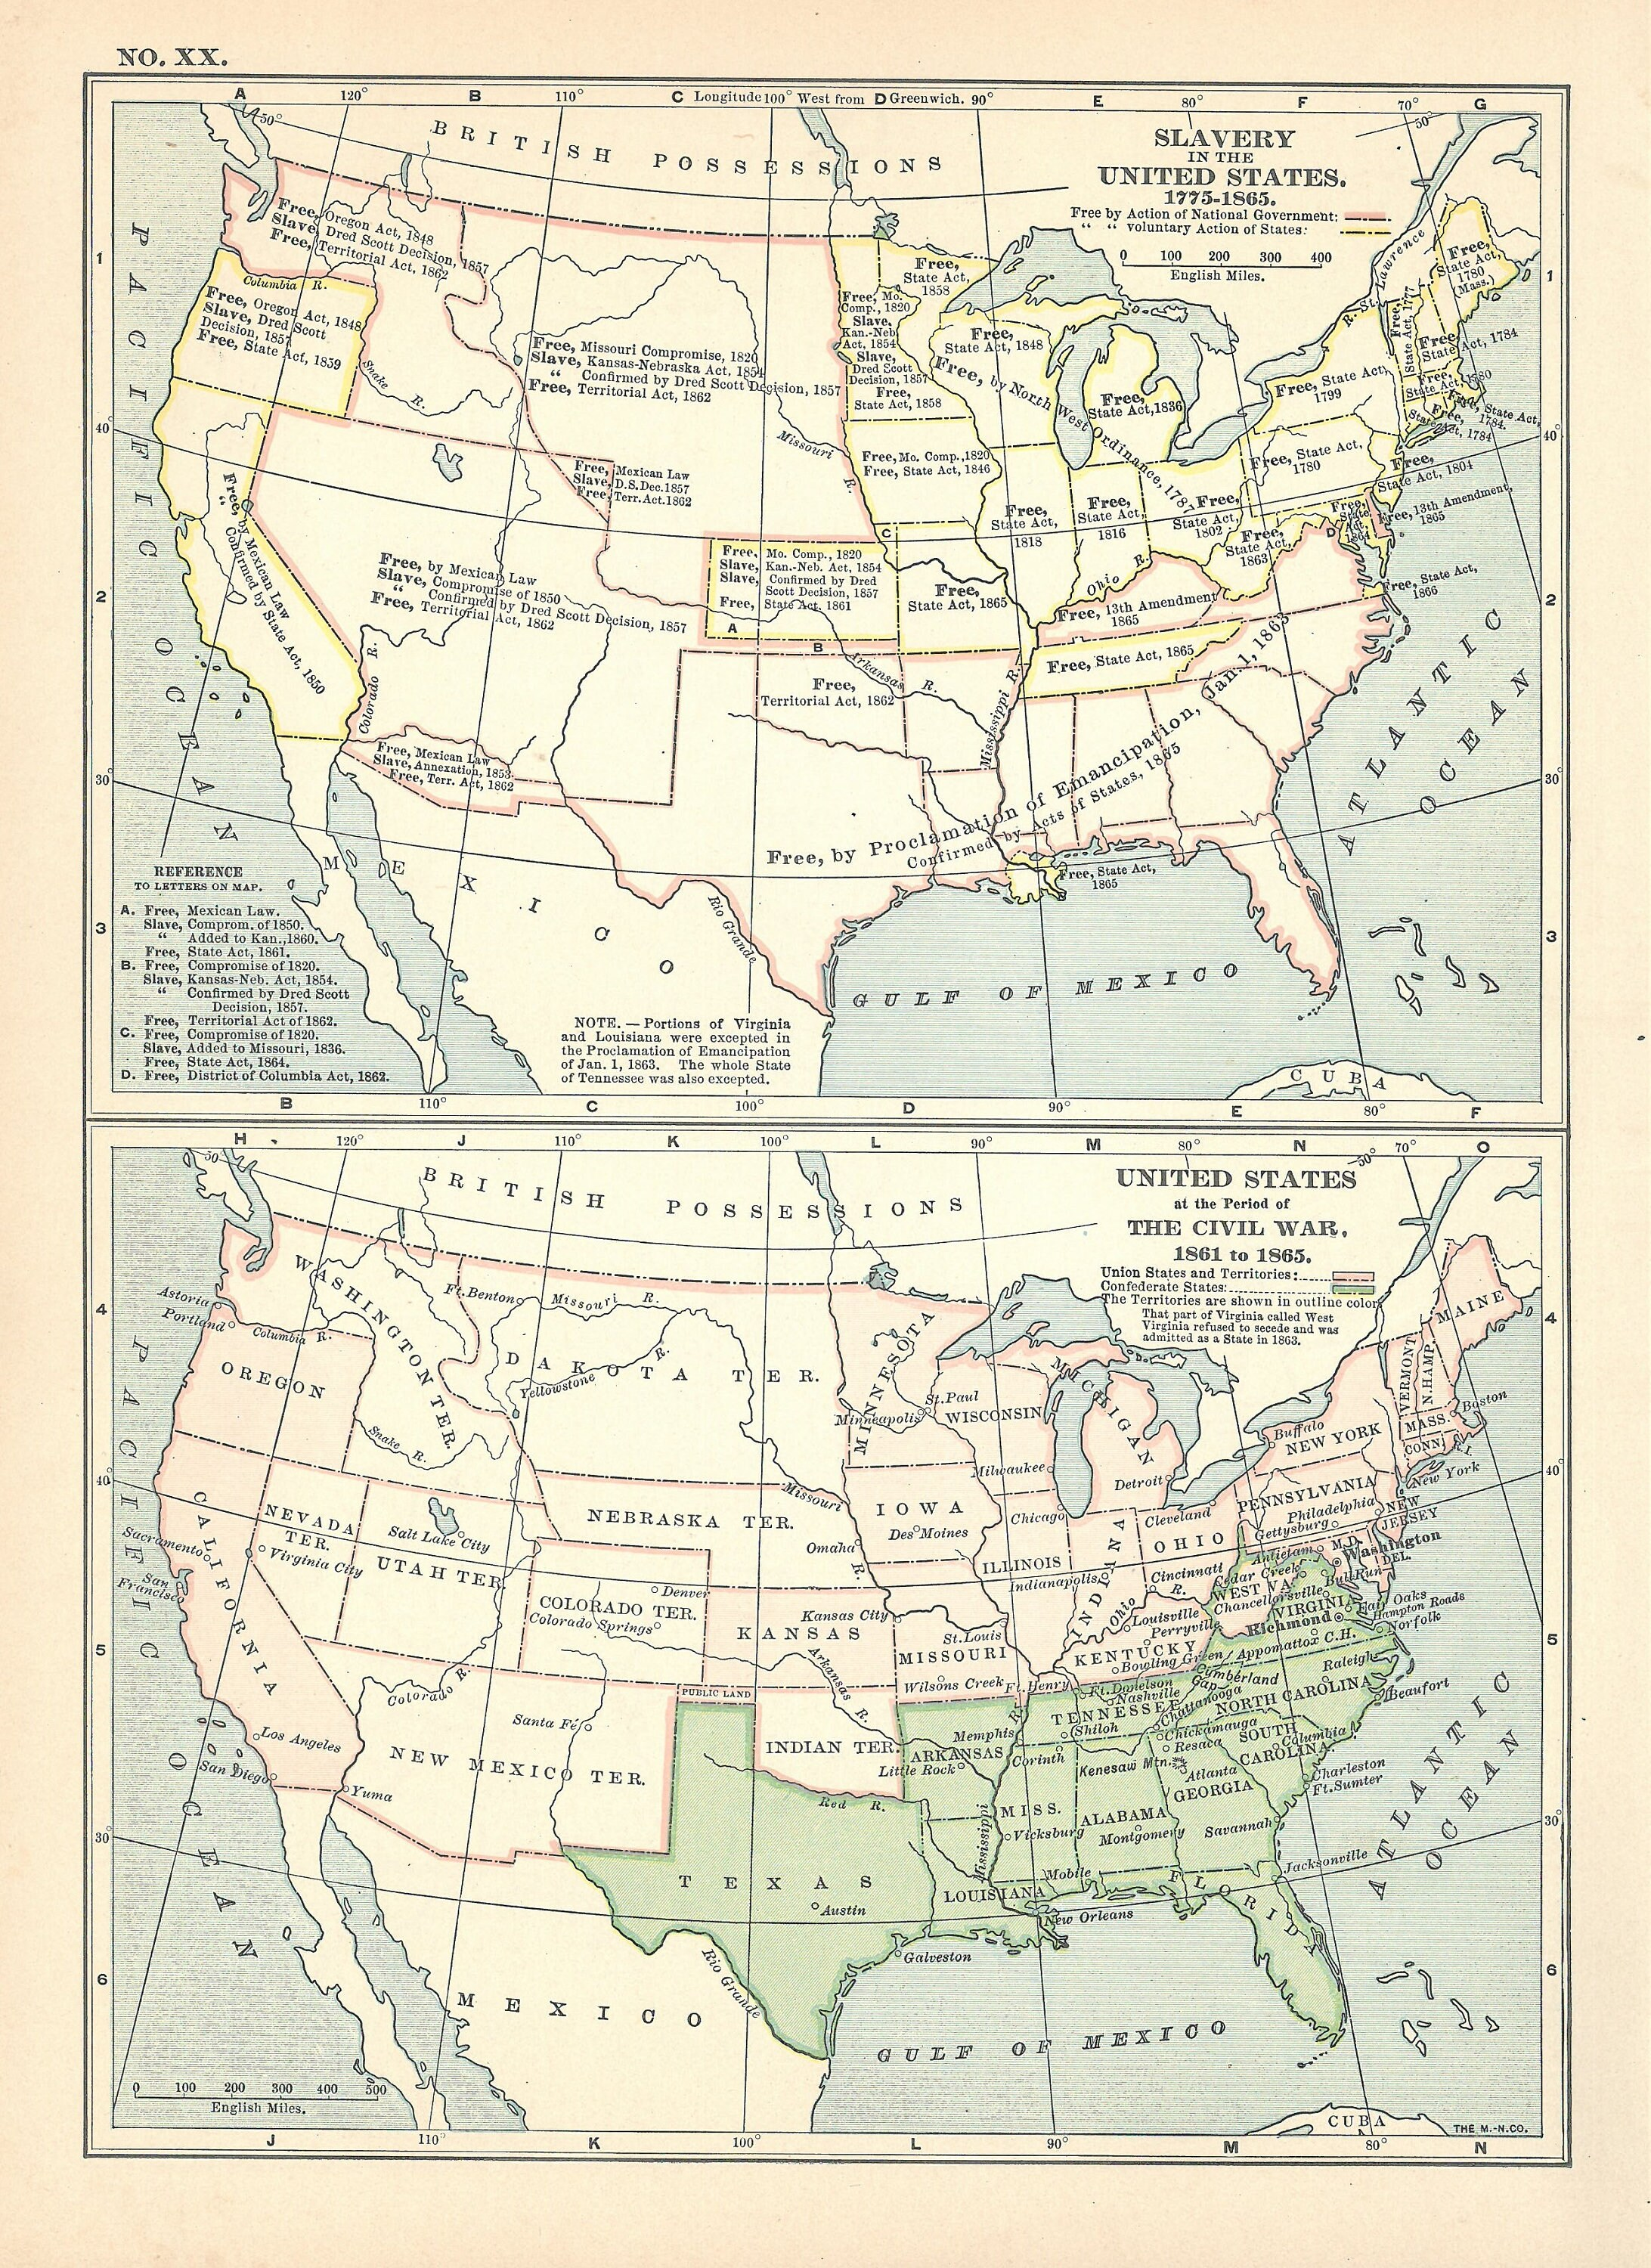 United States Maps,Vintage Map of History US - Territories, Development, on white map of usa, magnetic map of usa, chicago map of usa, pink map of usa, green map of usa, grey map of usa, blue map of usa, snap map of usa, gold map of usa, blank map of usa, flag map of usa,